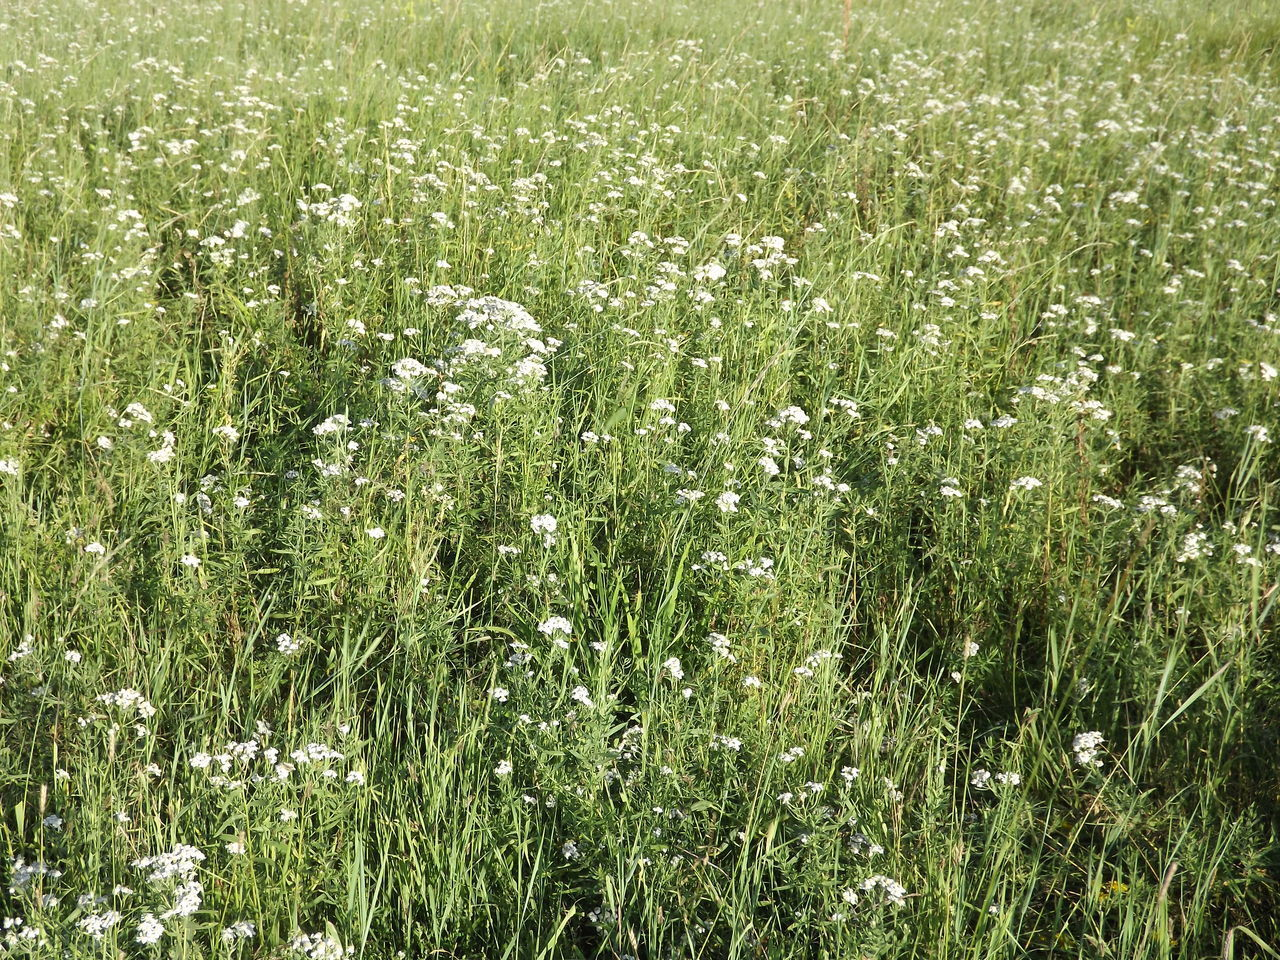 growth, nature, grass, plant, field, photosynthesis, green, beautiful, delicate, tranquility, tissue, landscape, no people, beauty in nature, outdoors, flower, freshness, day